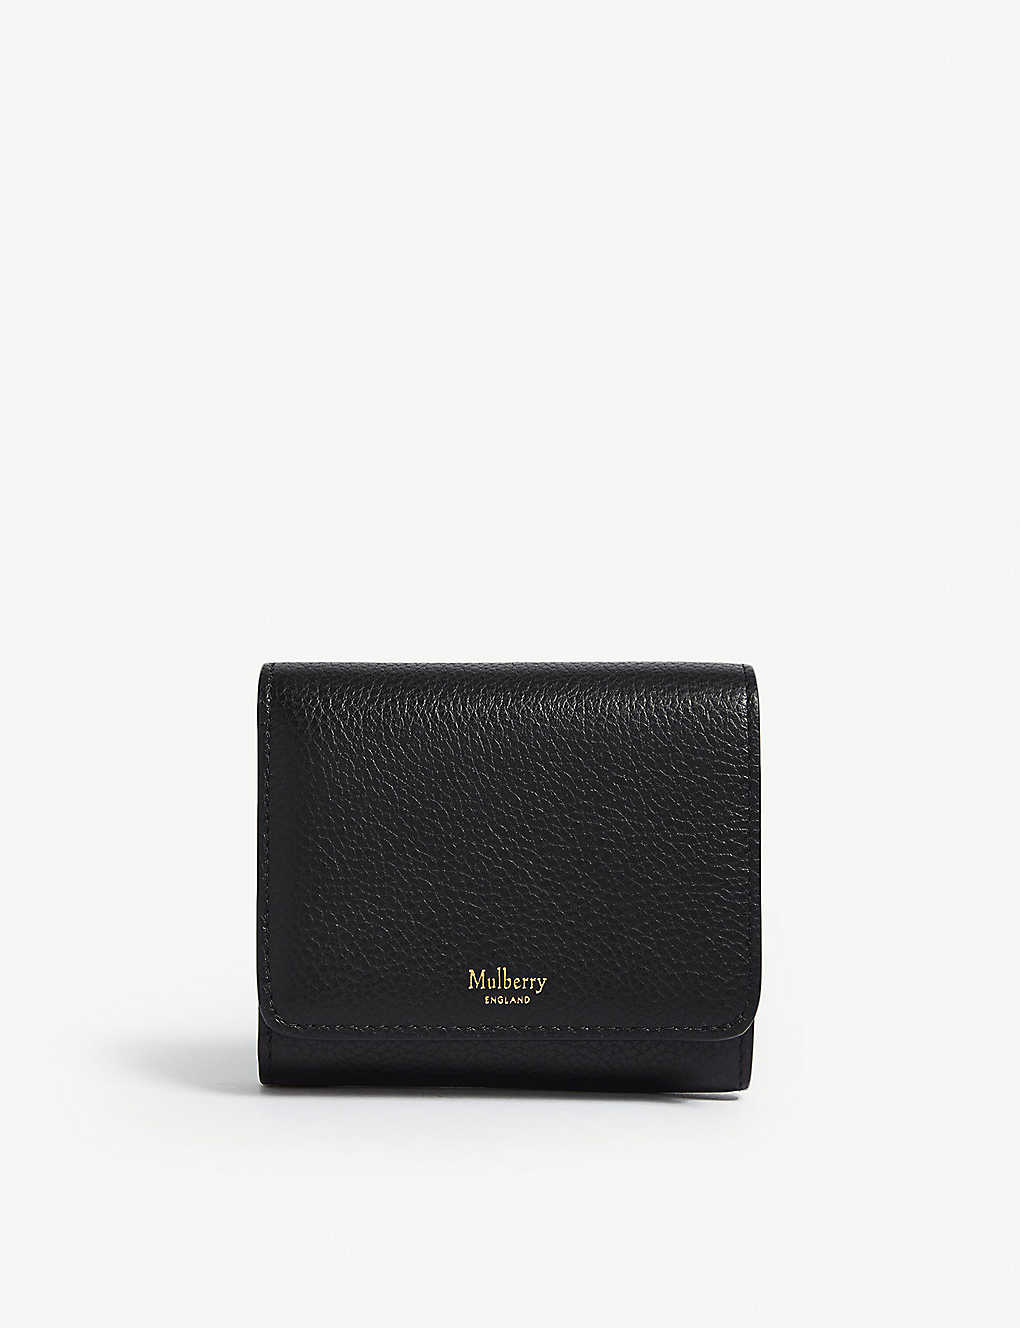 0ca1cf231c MULBERRY - Grained leather small continental wallet | Selfridges.com